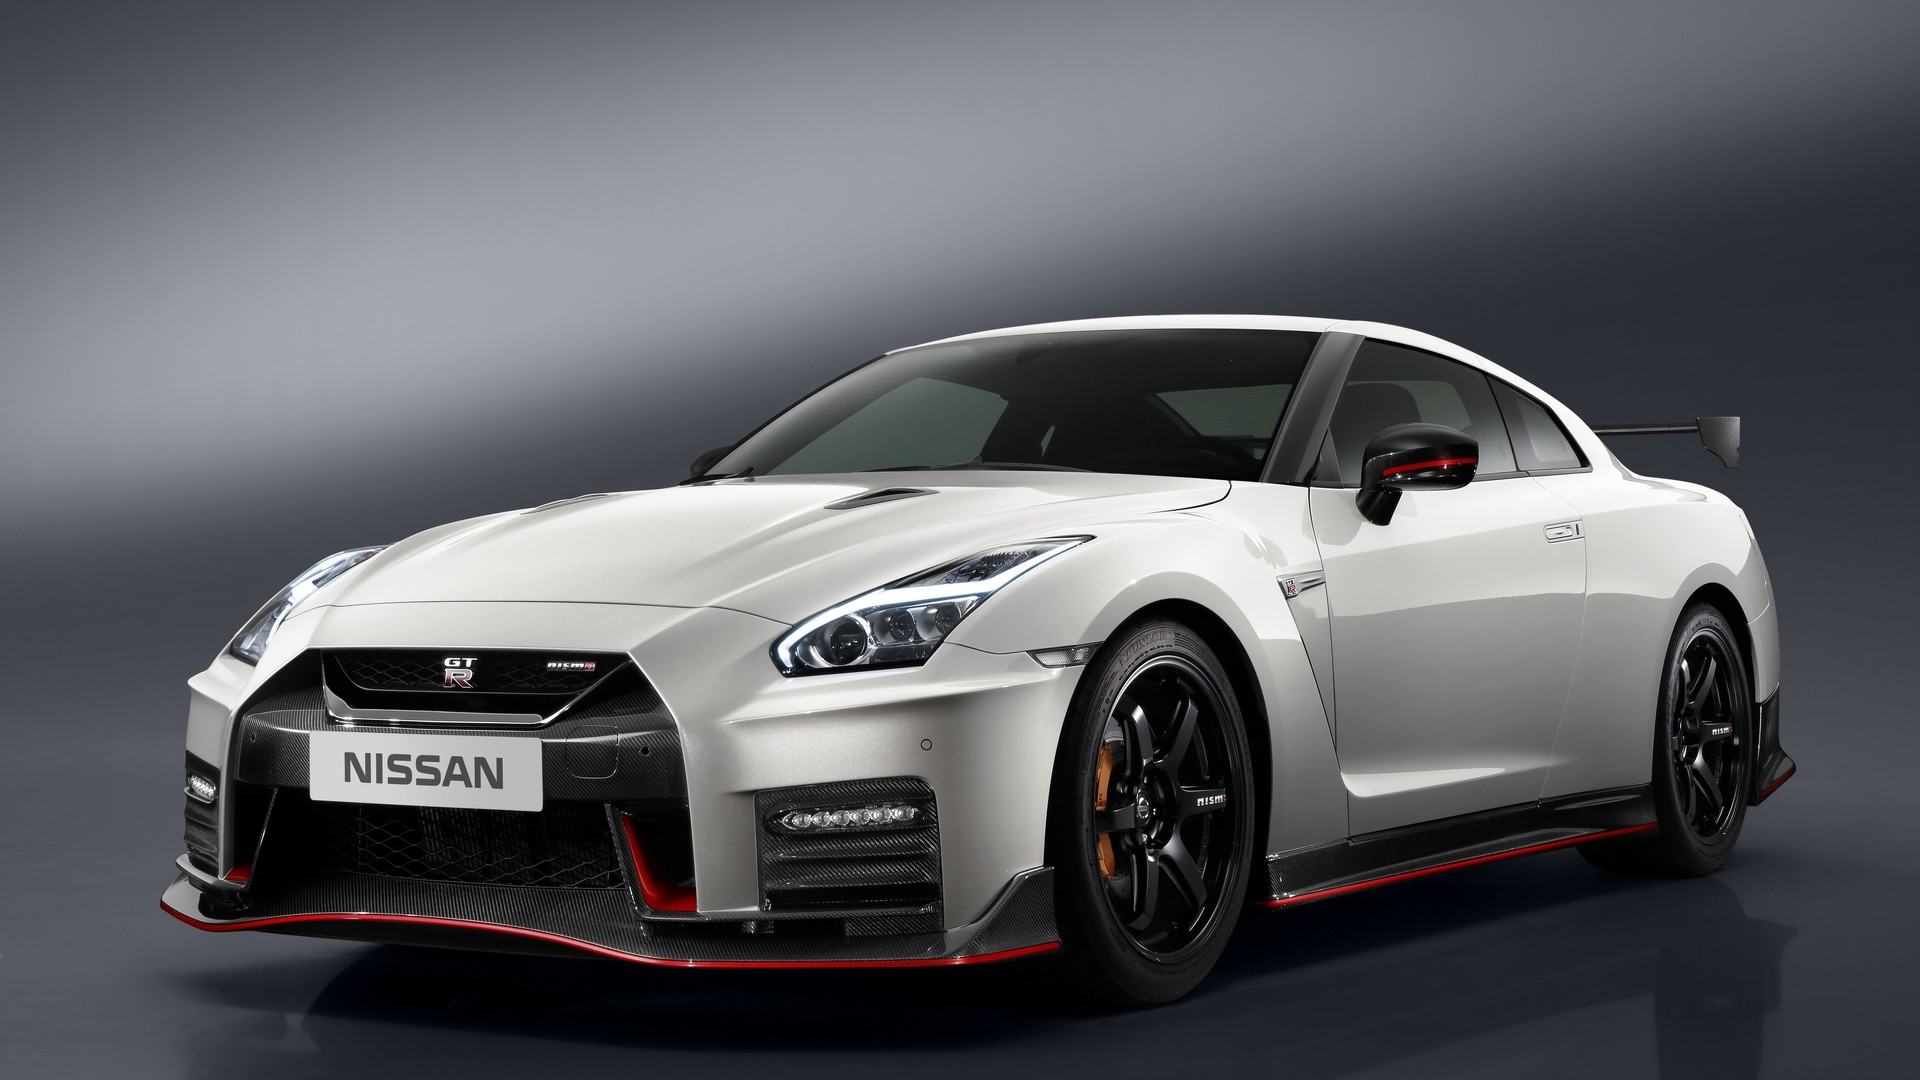 Nissan Gtr 2017 1920x1080 >> 2017 Nissan Gt R Nismo Priced From 174 990 In U S